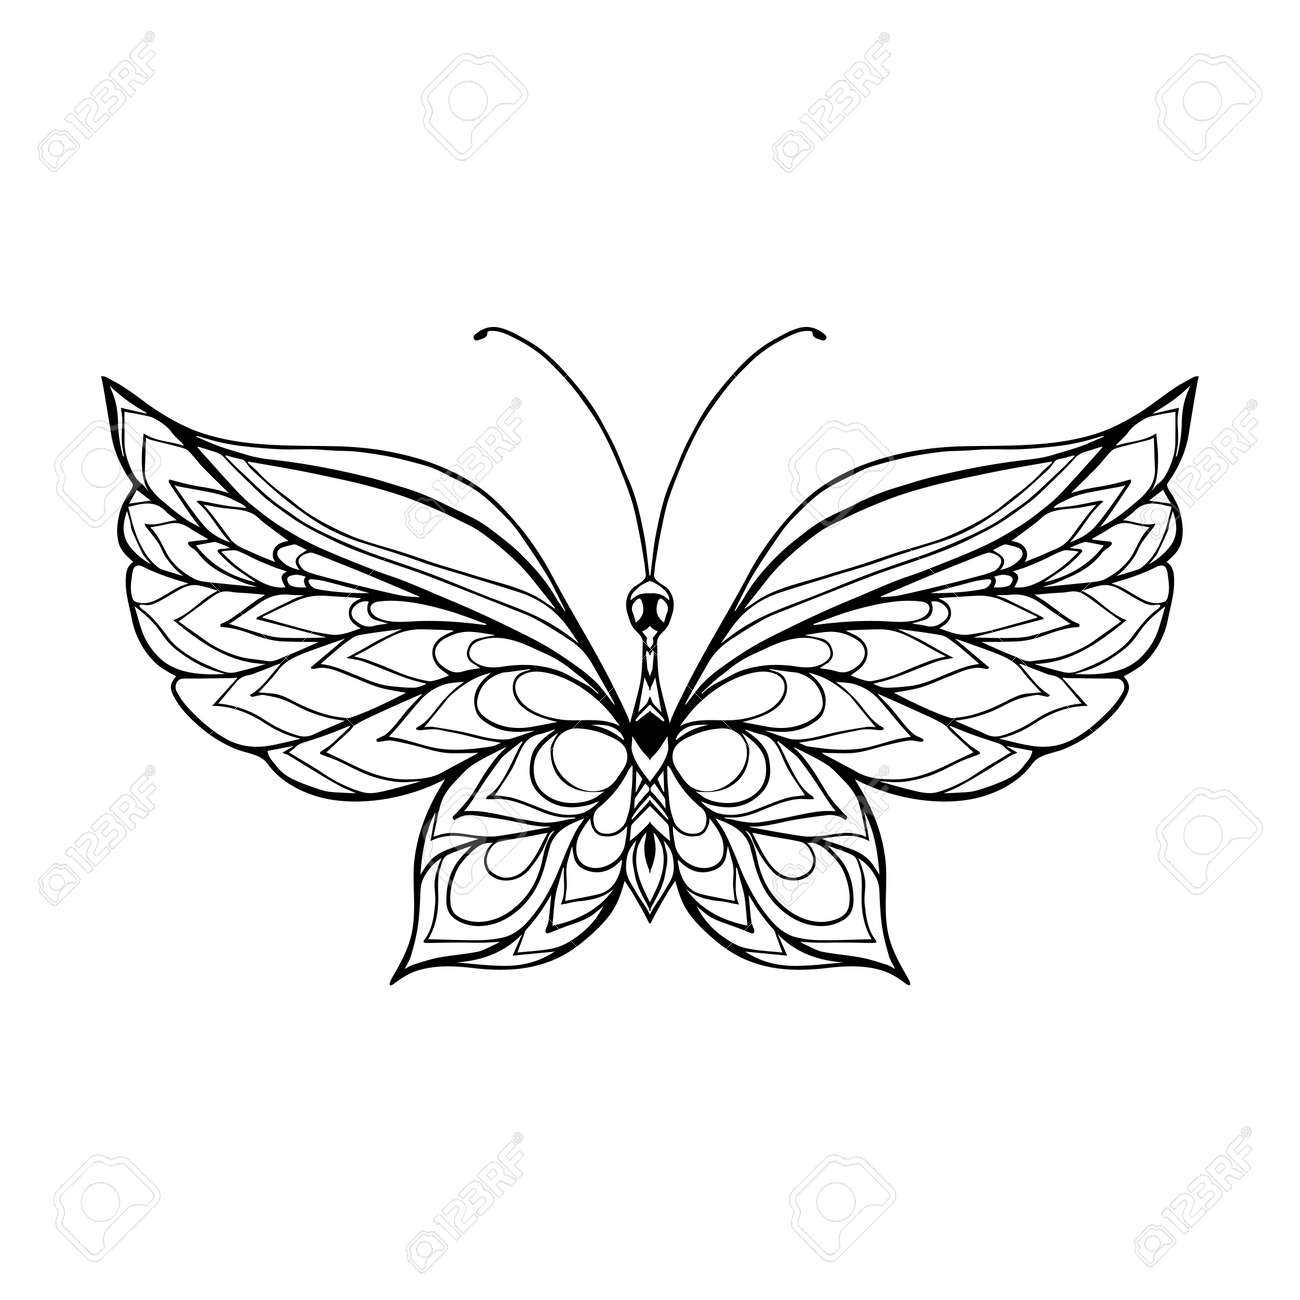 butterfly coloring 57545736 decorative butterfly coloring book for adult and older children coloring page outline drawing vector stock vector - Children Coloring Book